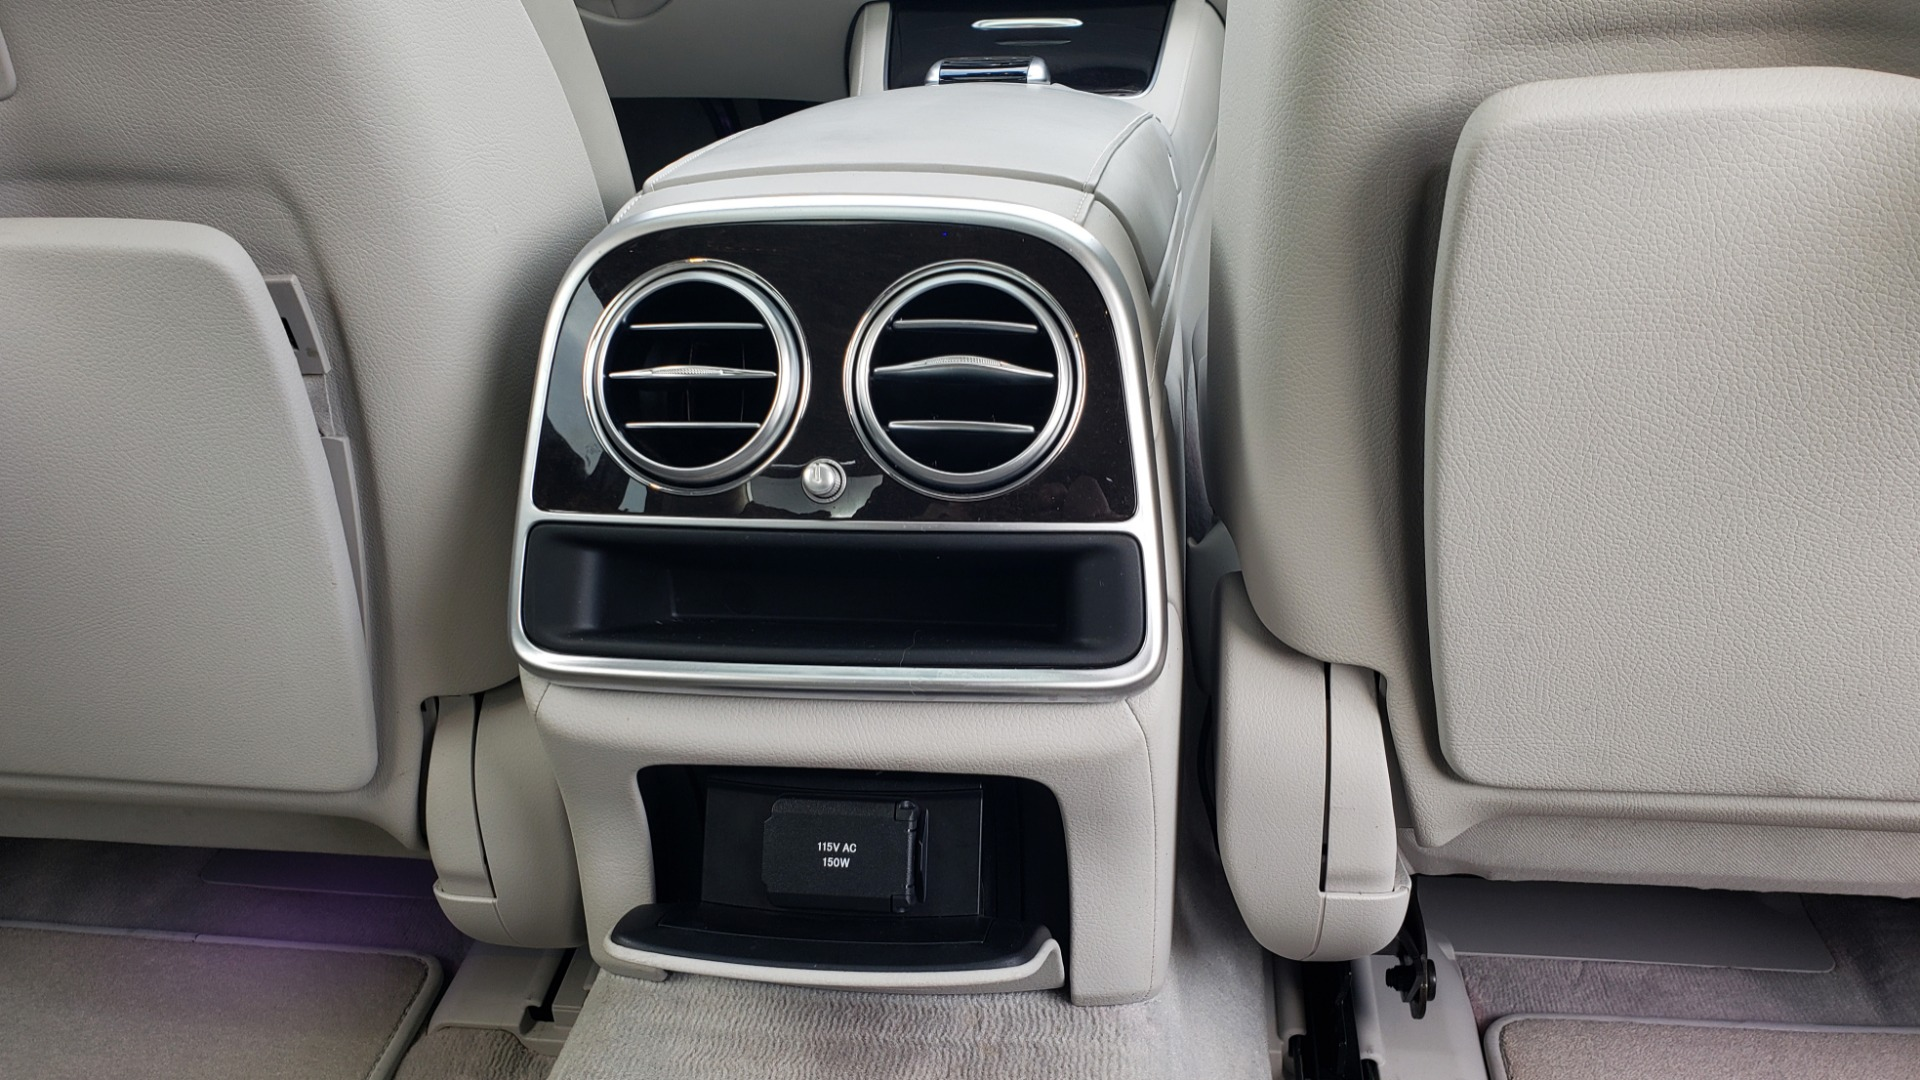 Used 2015 Mercedes-Benz S-CLASS S 550 PREMIUM / SPORT / WARMTH&COMFORT / DRVR ASST / SRND VIEW for sale Sold at Formula Imports in Charlotte NC 28227 90